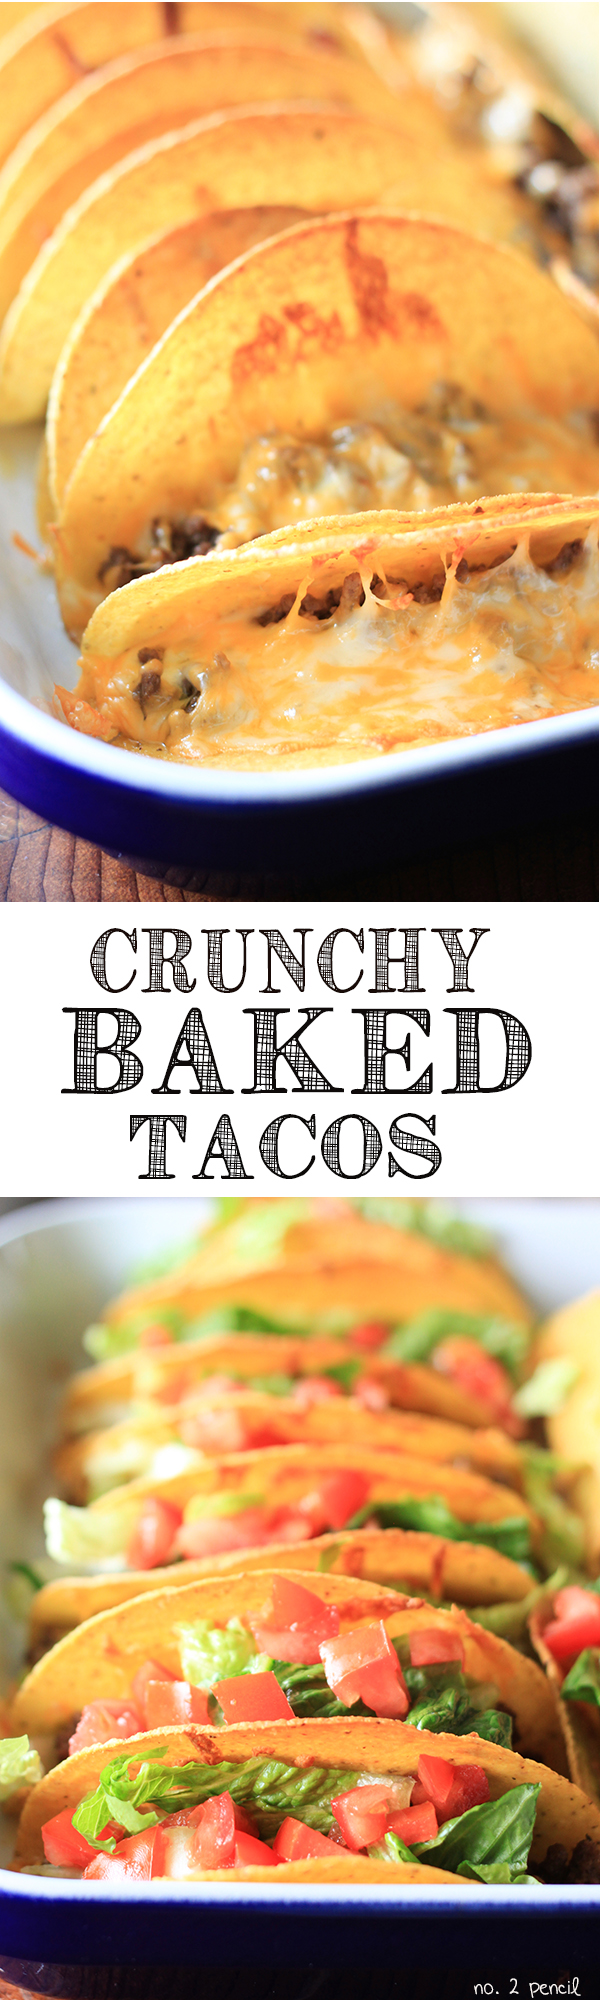 Crunchy Baked Tacos